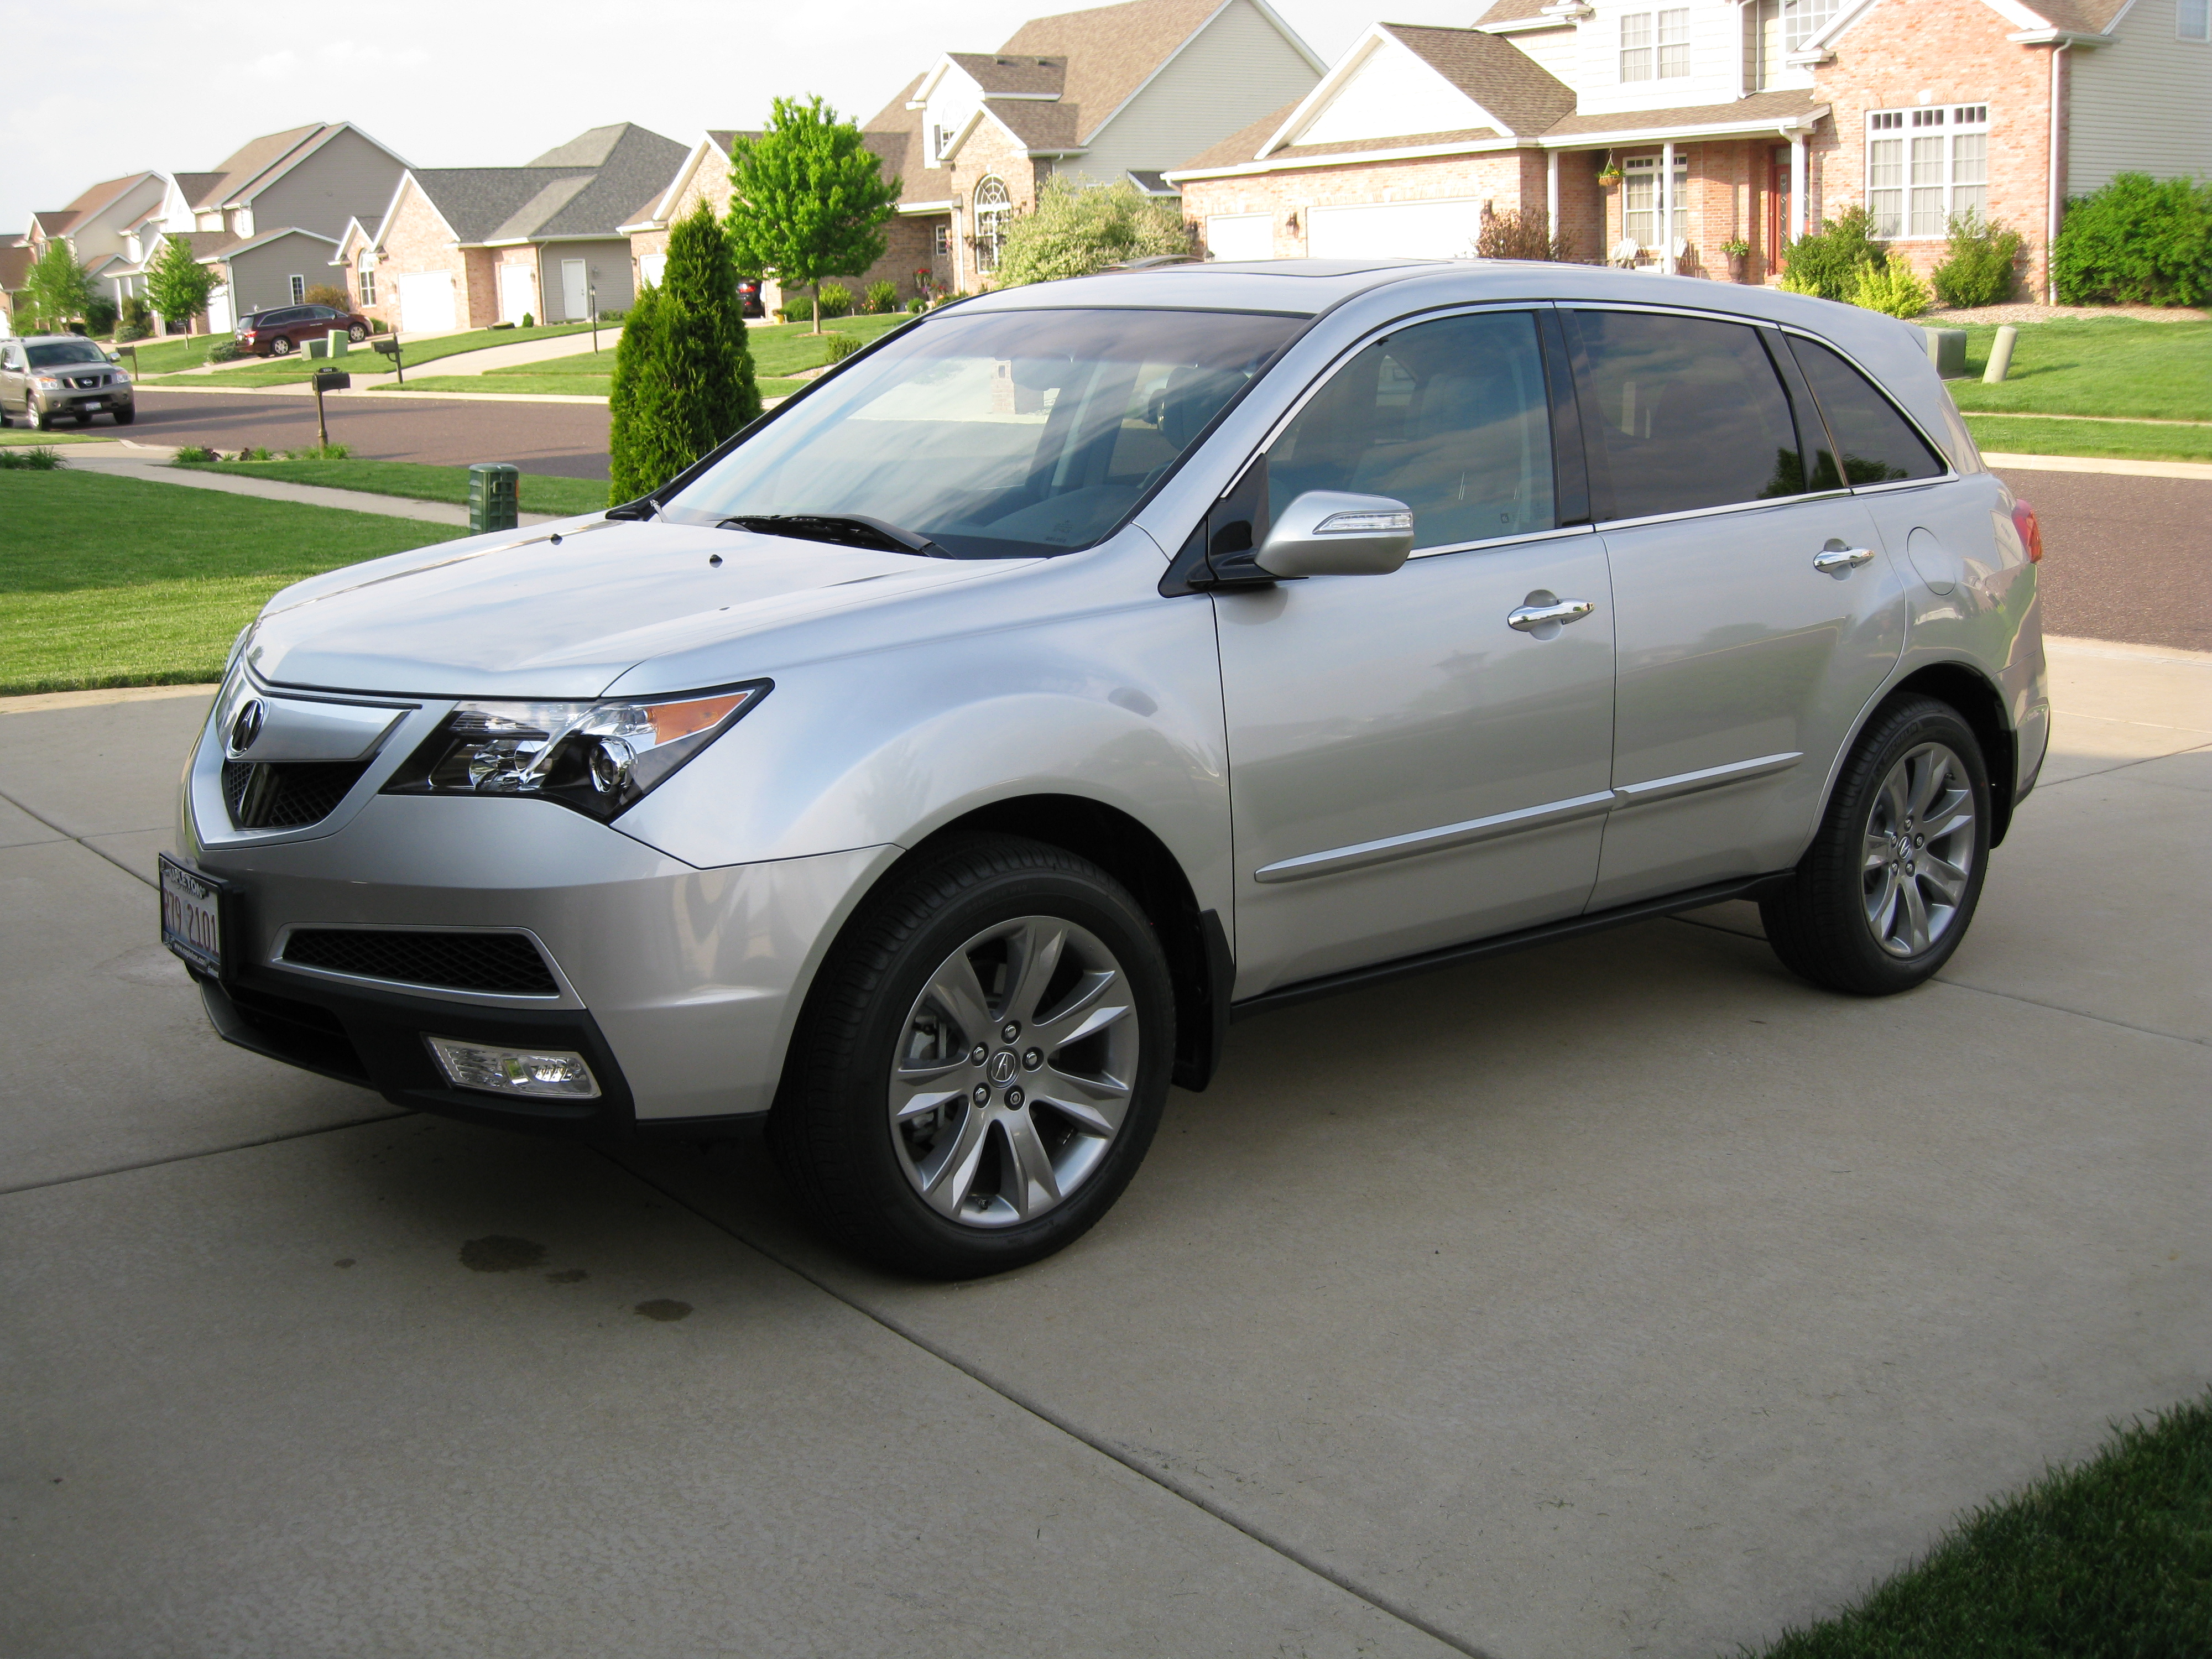 mdx acura price suv photos exterior front reviews wheel view all features drive